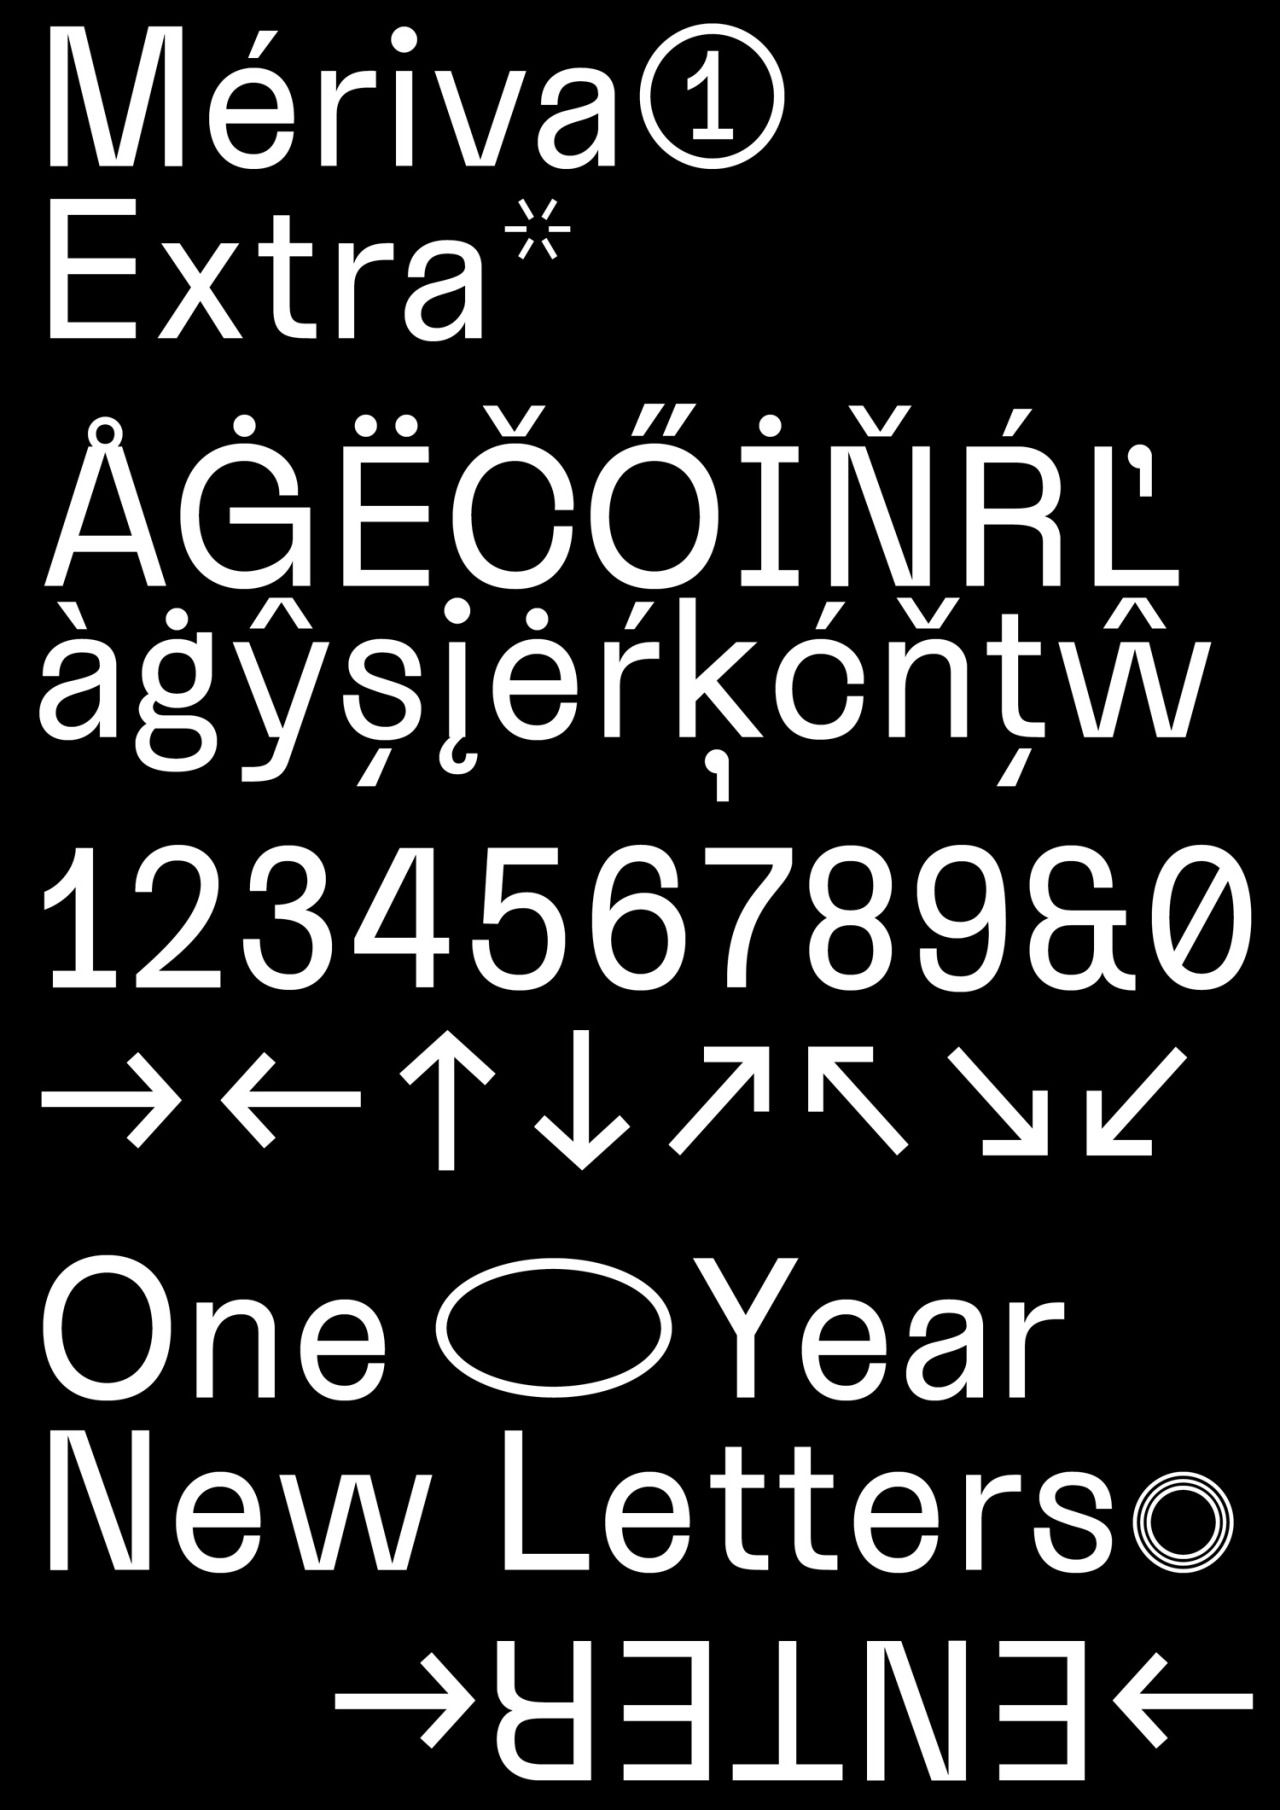 NewLetters One Year New Letters Thank You Very Much For Your